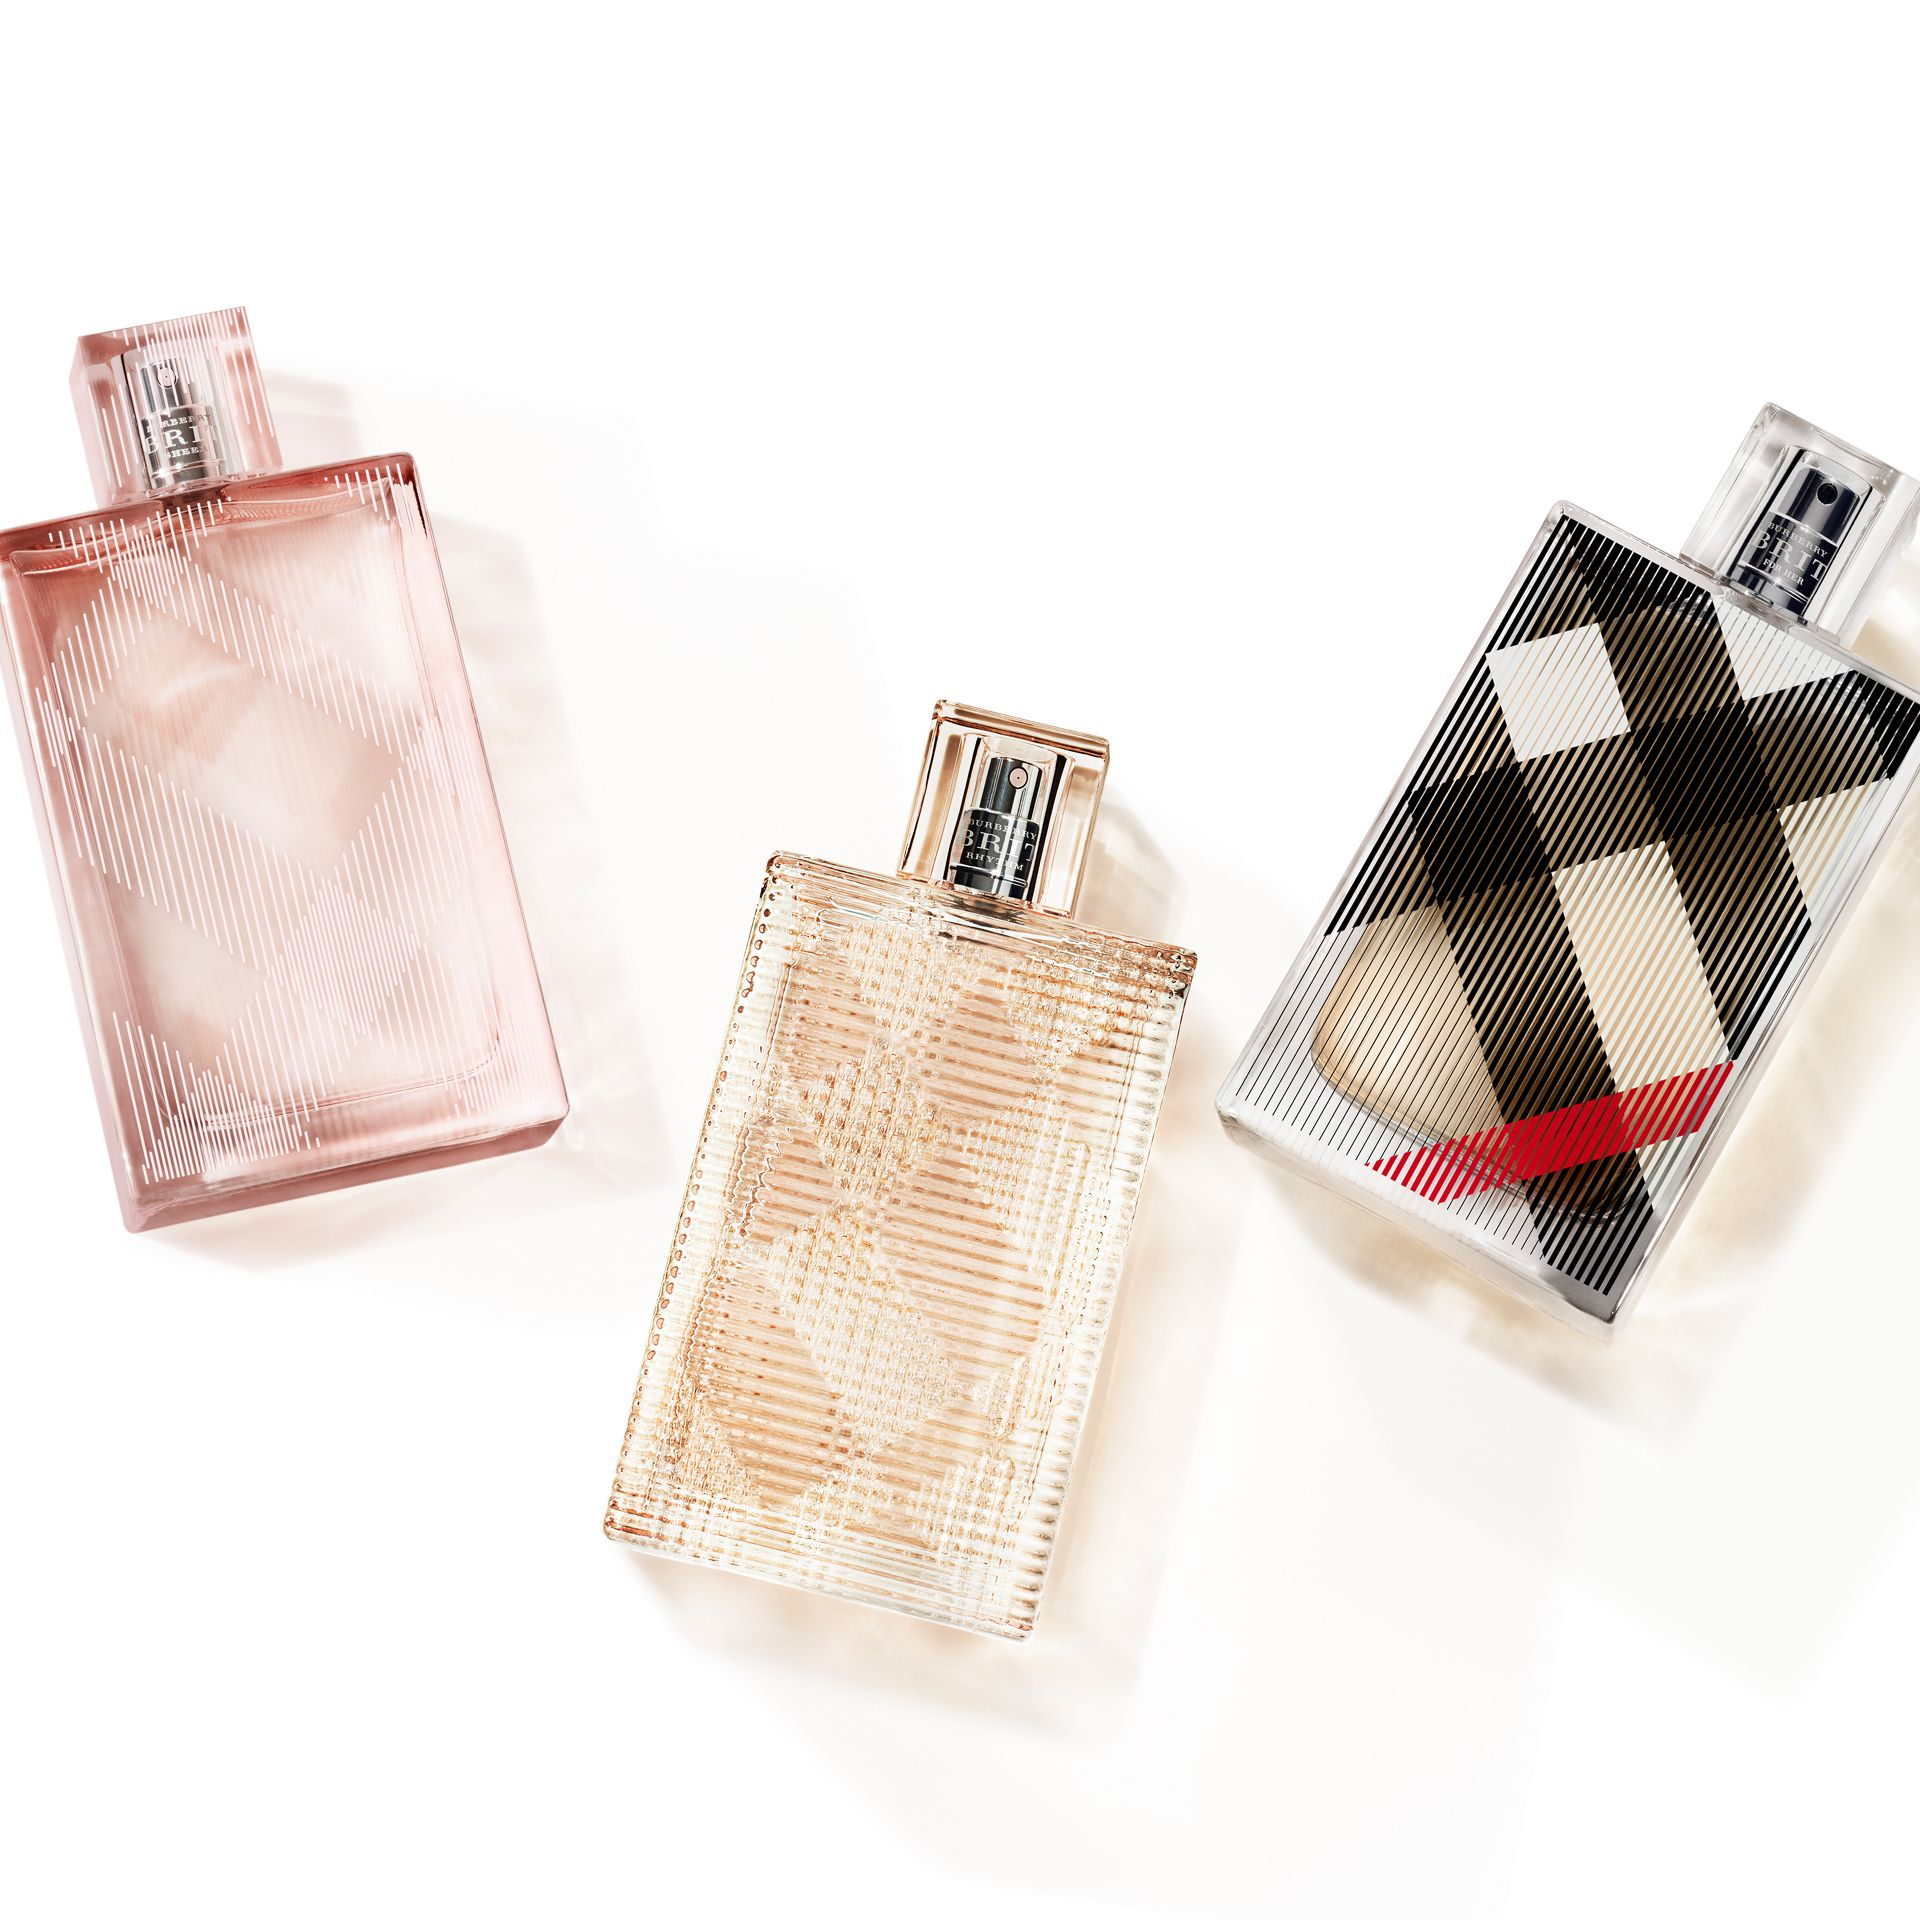 Burberry Brit Sheer Eau de Toilette 50ml - Women | Burberry - gallery image 3